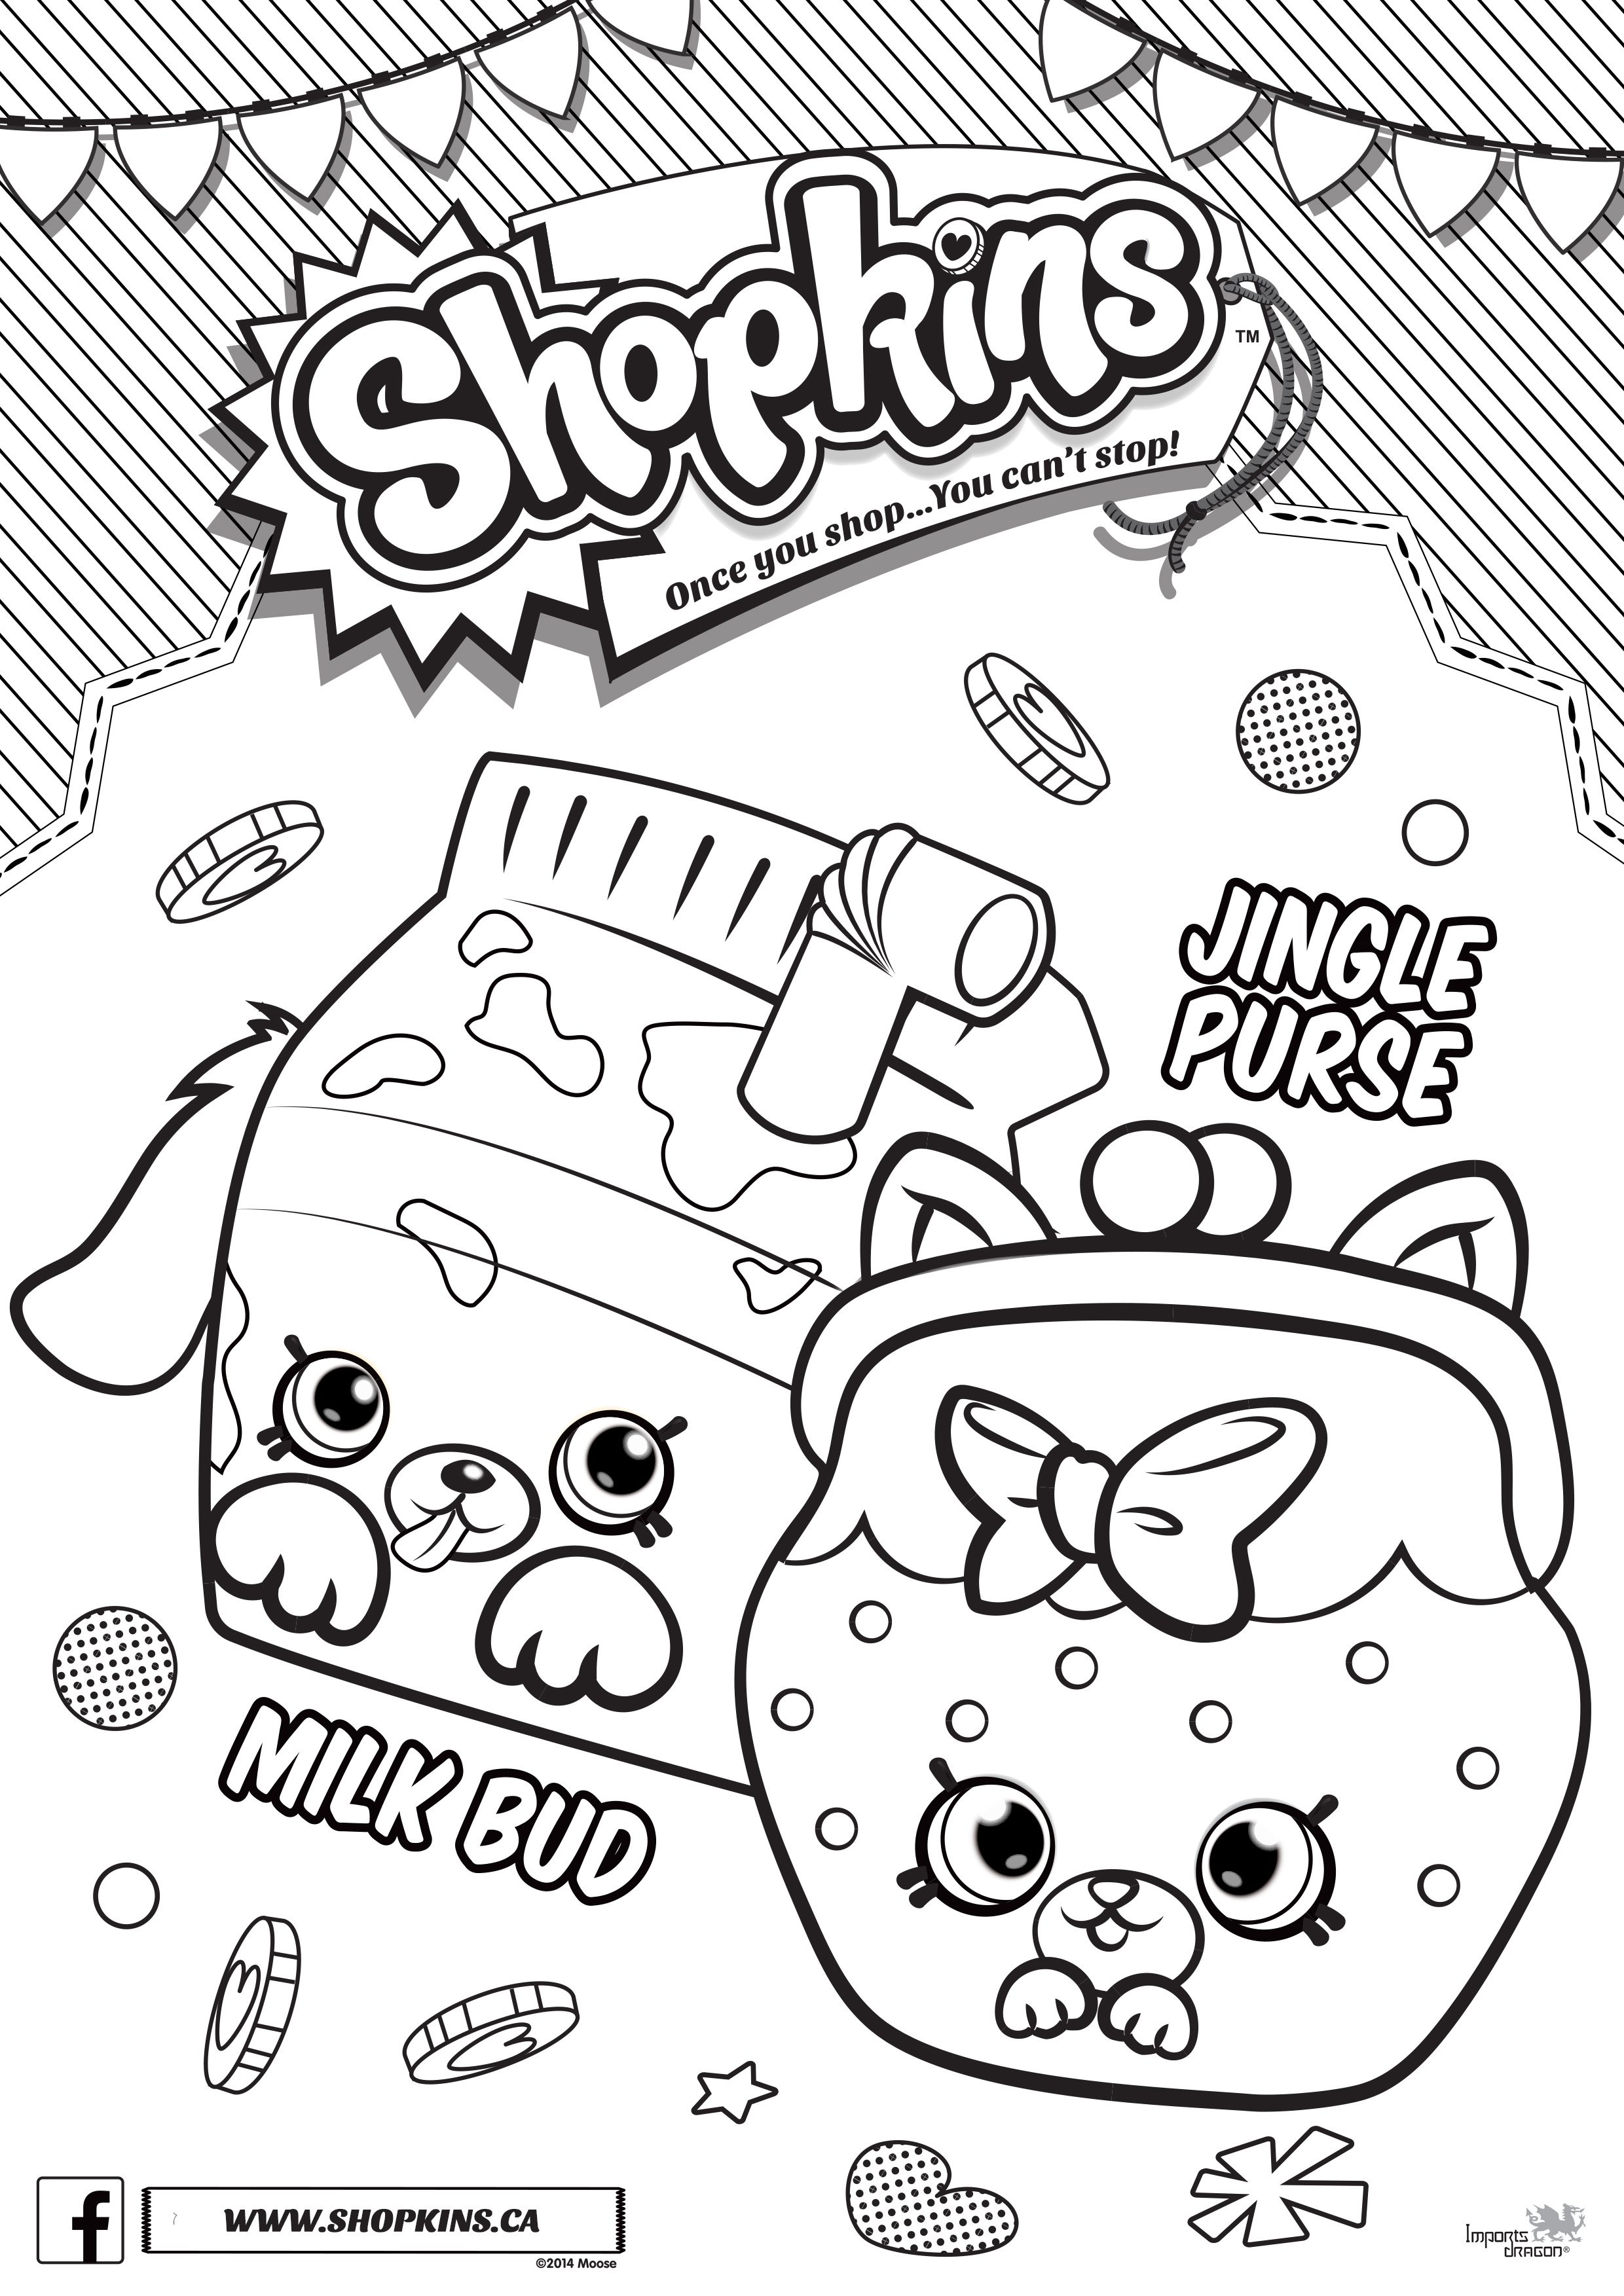 free shopkins coloring pages - q=chee zee shopkins